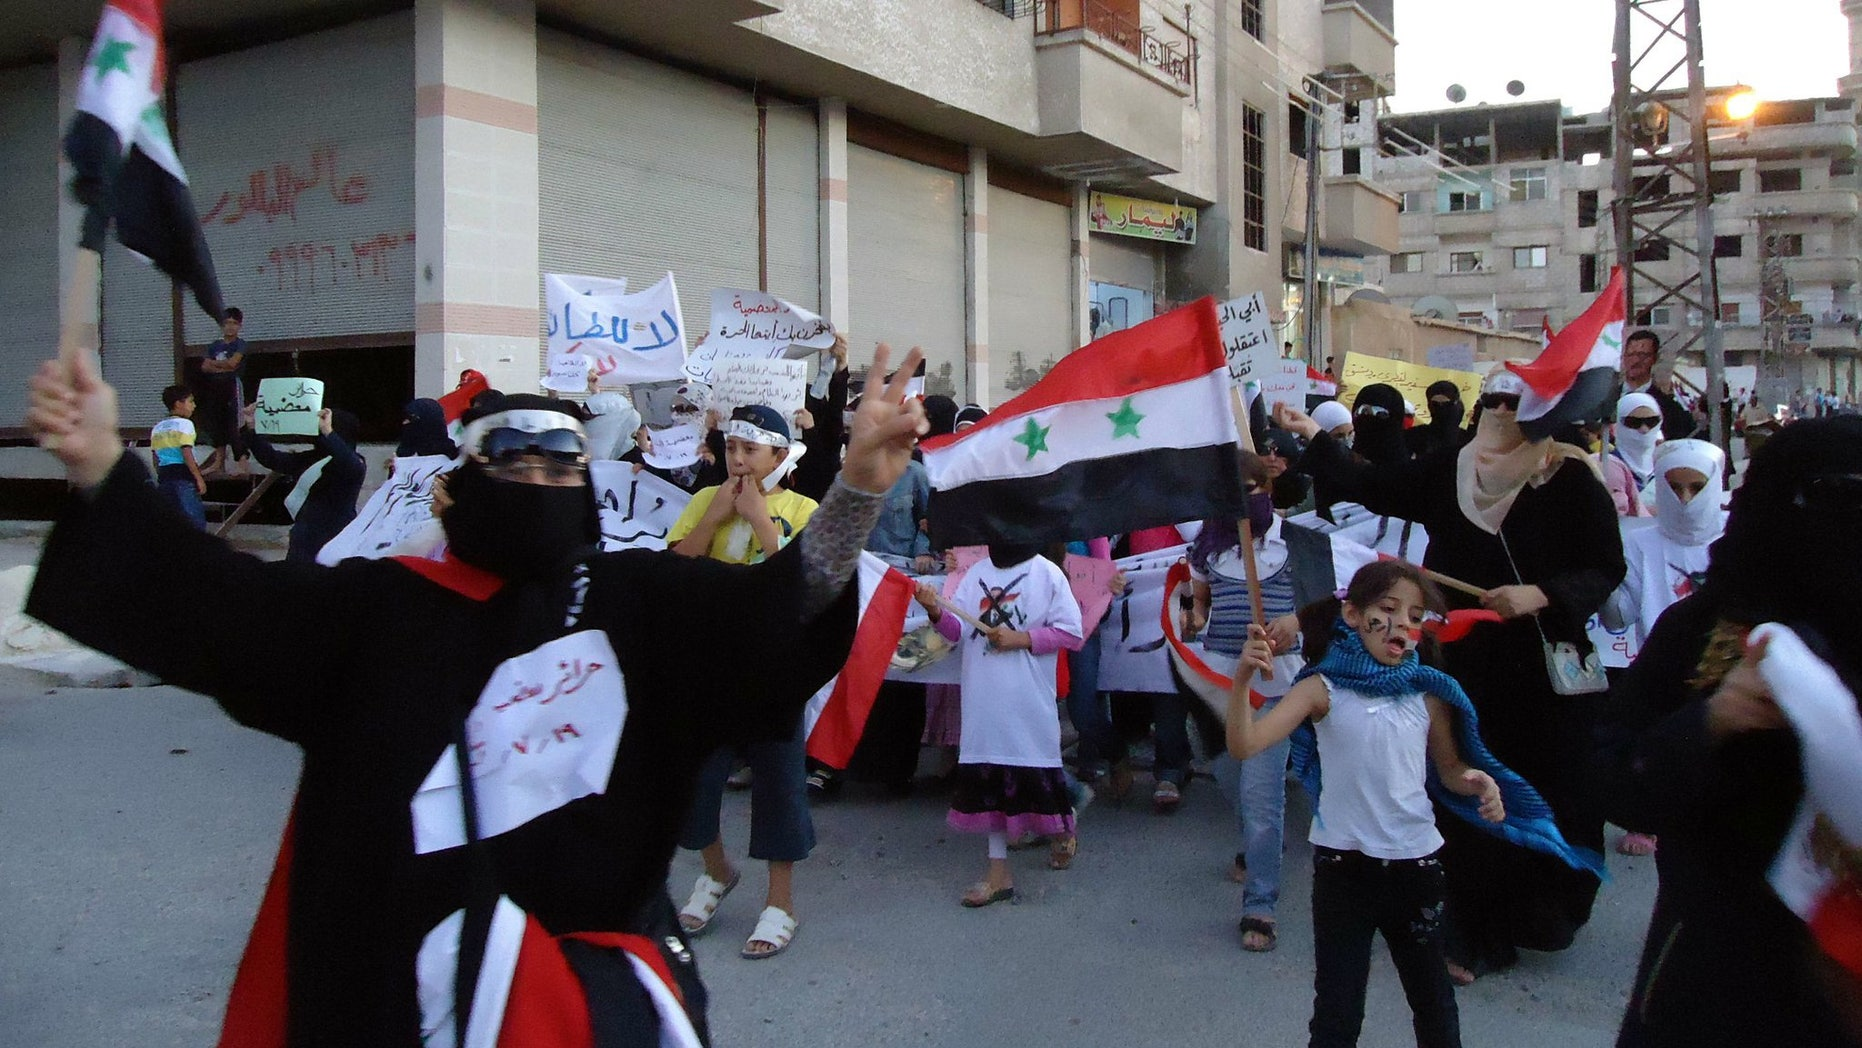 Syrian anti-regime protesters carry national flags and banners during a rally in the southern suburb of Maadamiya, Damascus, Syria.